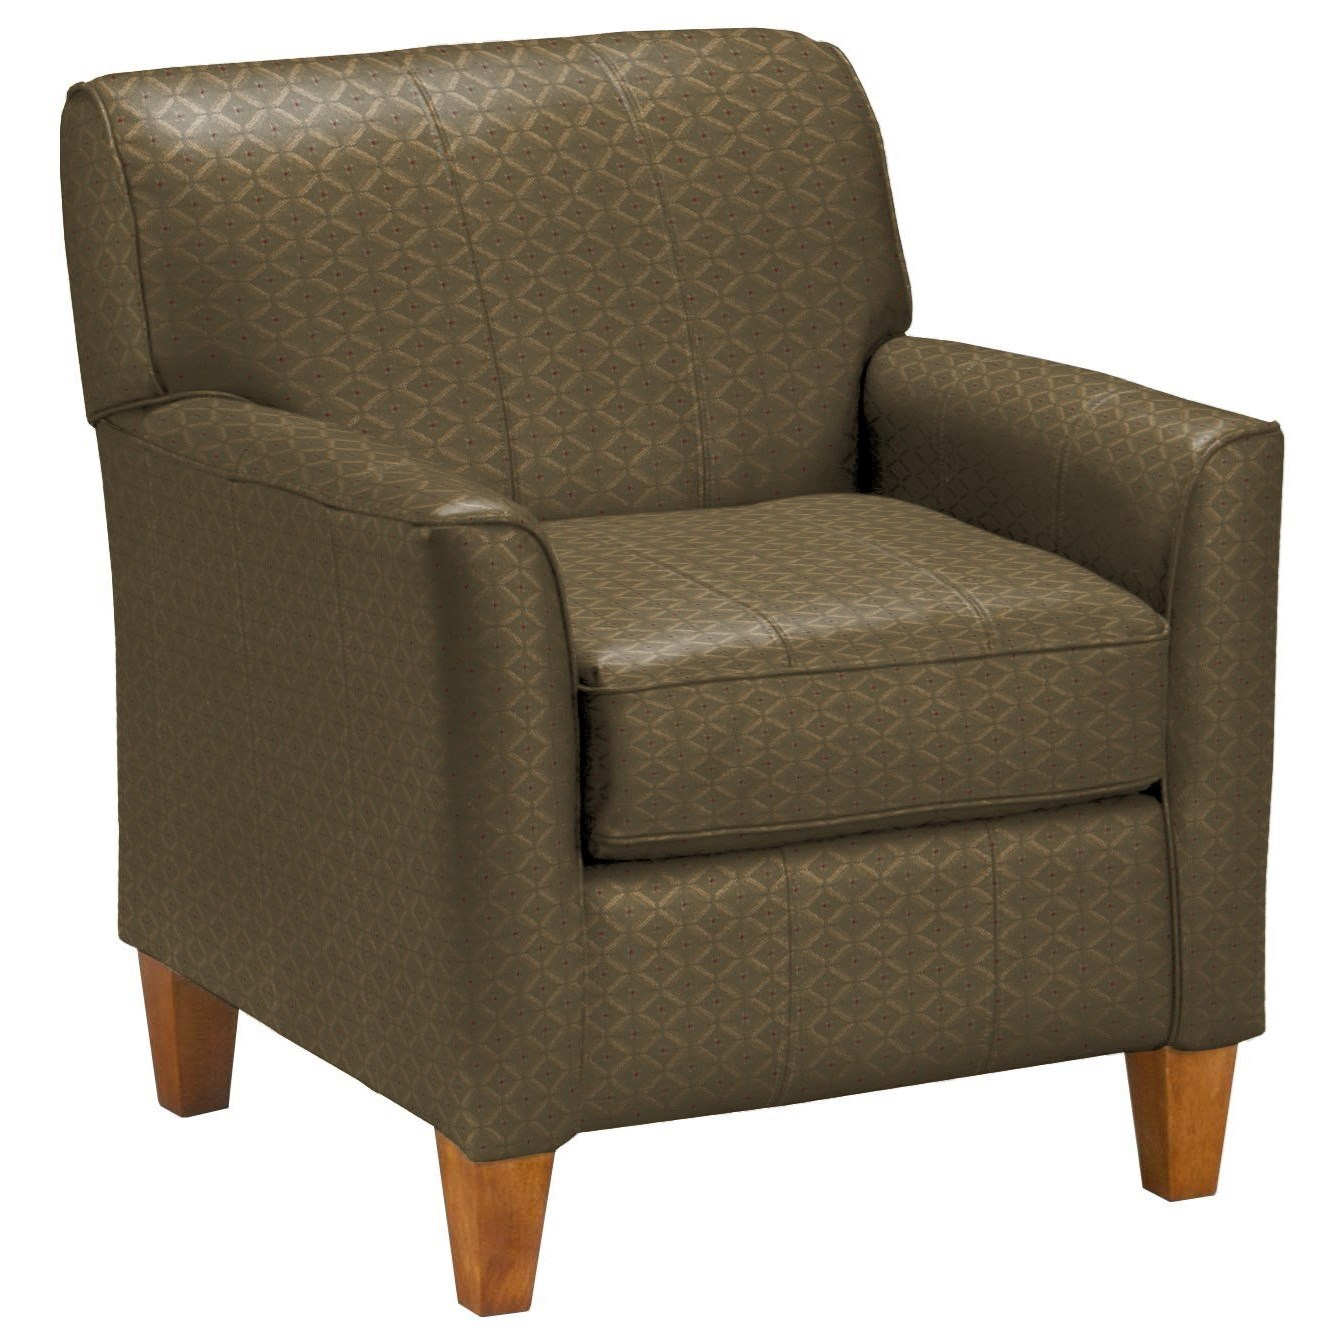 Club Chairs Risa Club Chair by Best Home Furnishings at Lapeer Furniture & Mattress Center